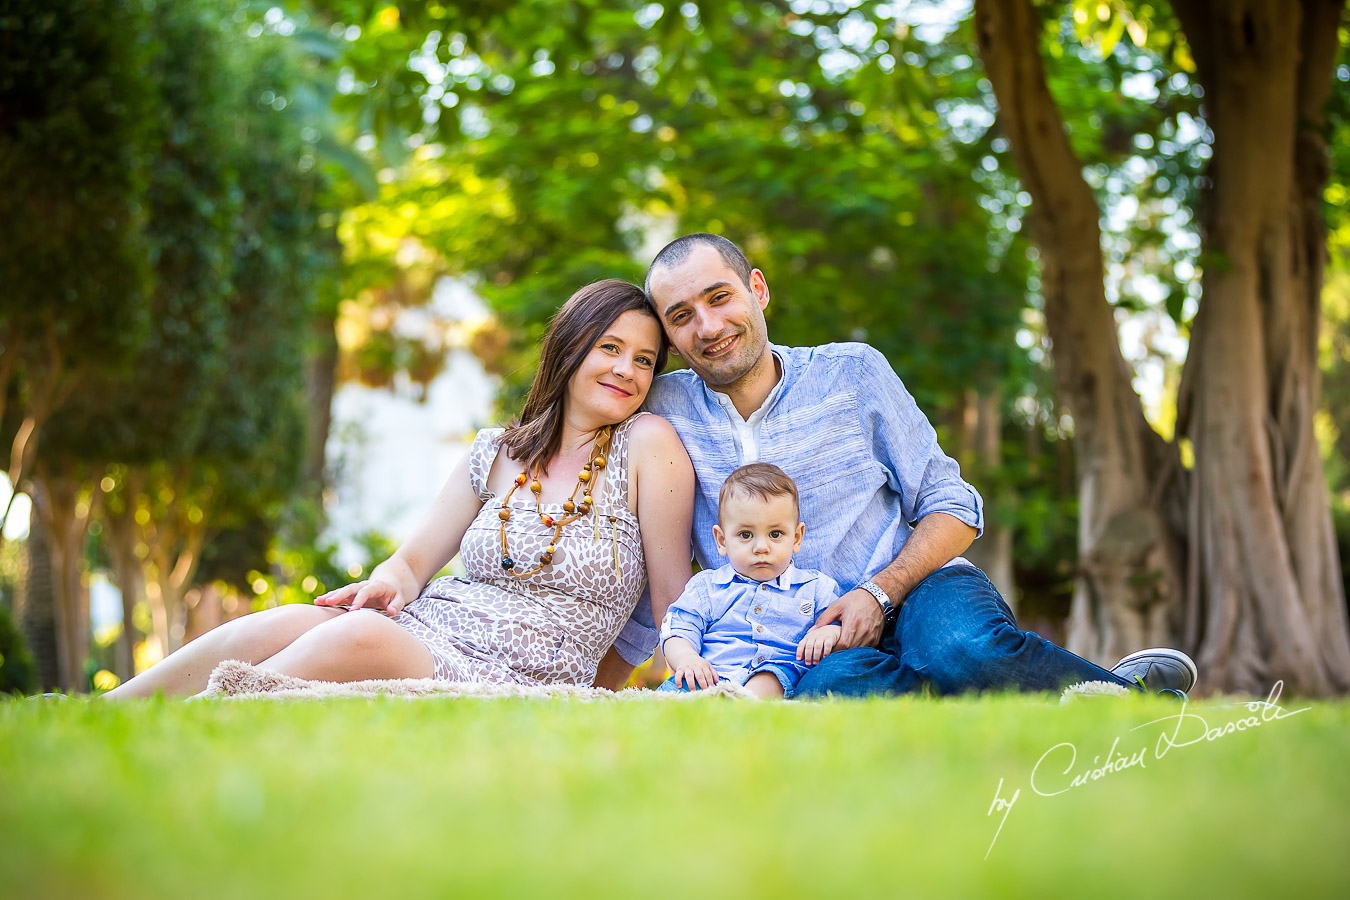 Magical Photo Shoot in Limassol Park - 03